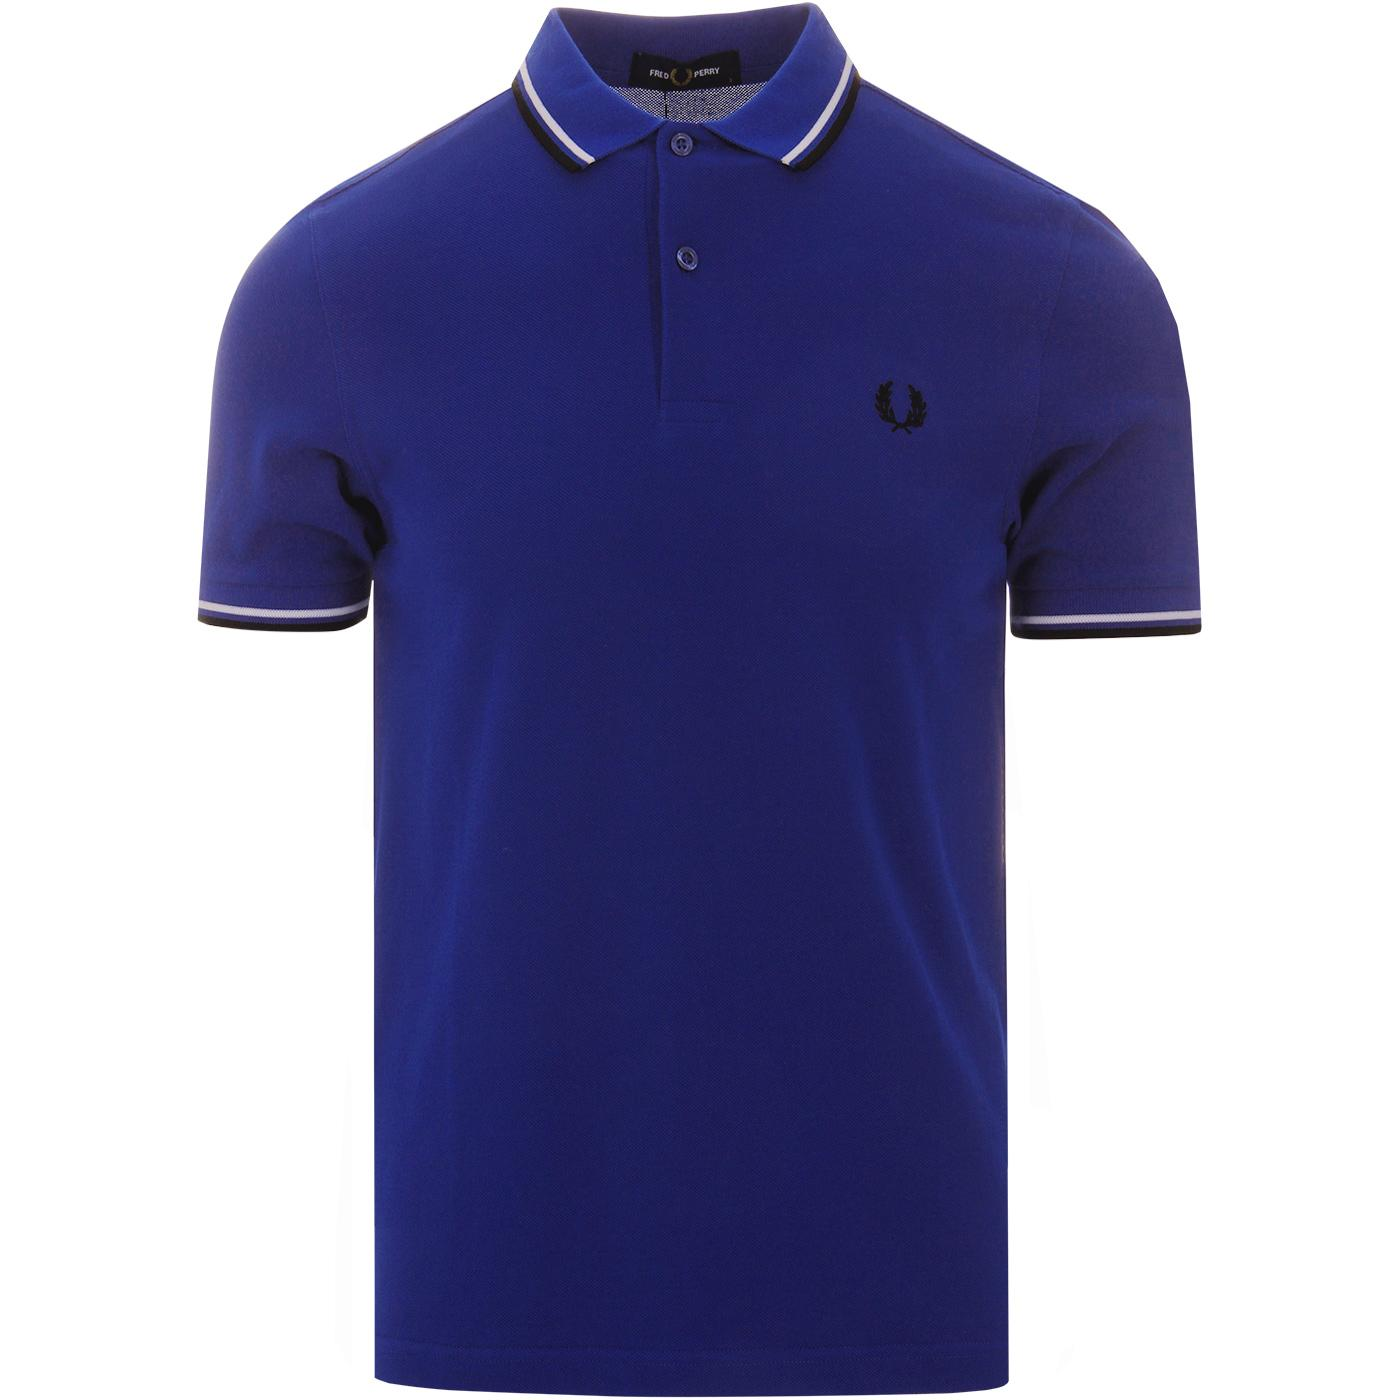 FRED PERRY M3600 Mod Twin Tipped Polo Top (Regal)